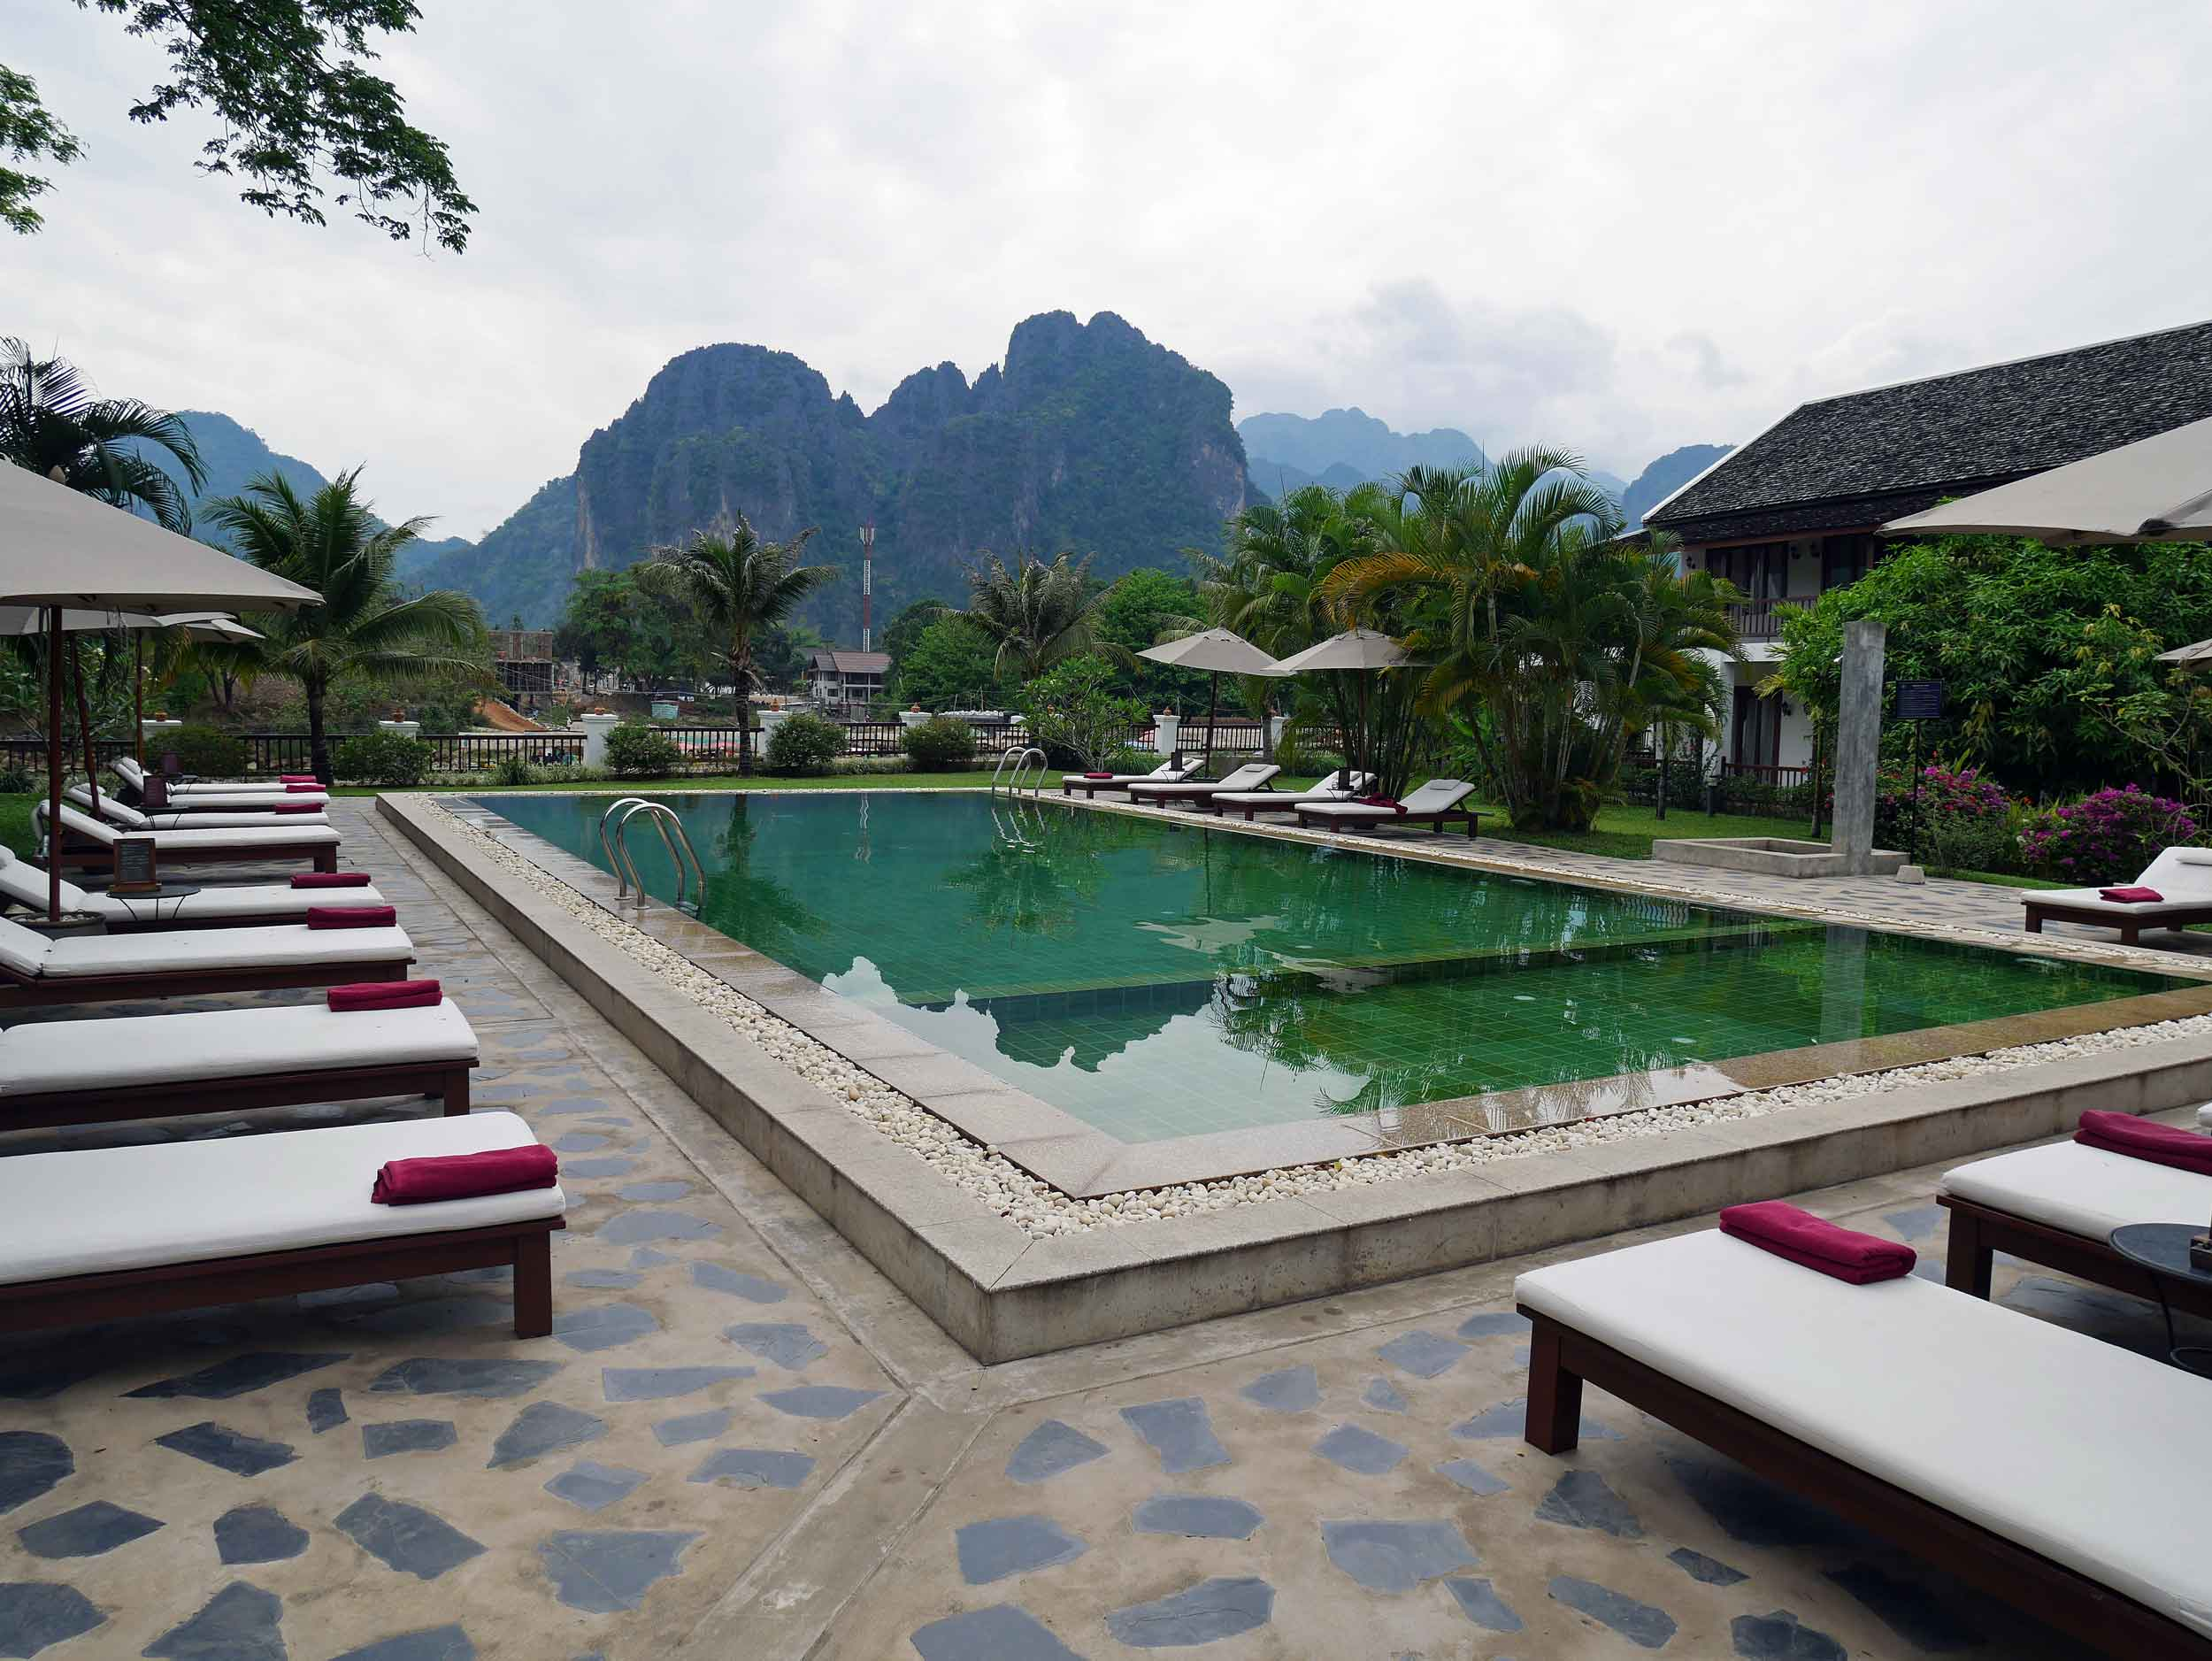 A short minibus ride north brought us to Vang Vieng, where we celebrated Martin's birthday at a picturesque boutique hotel beside the Nam Song River (March 31).